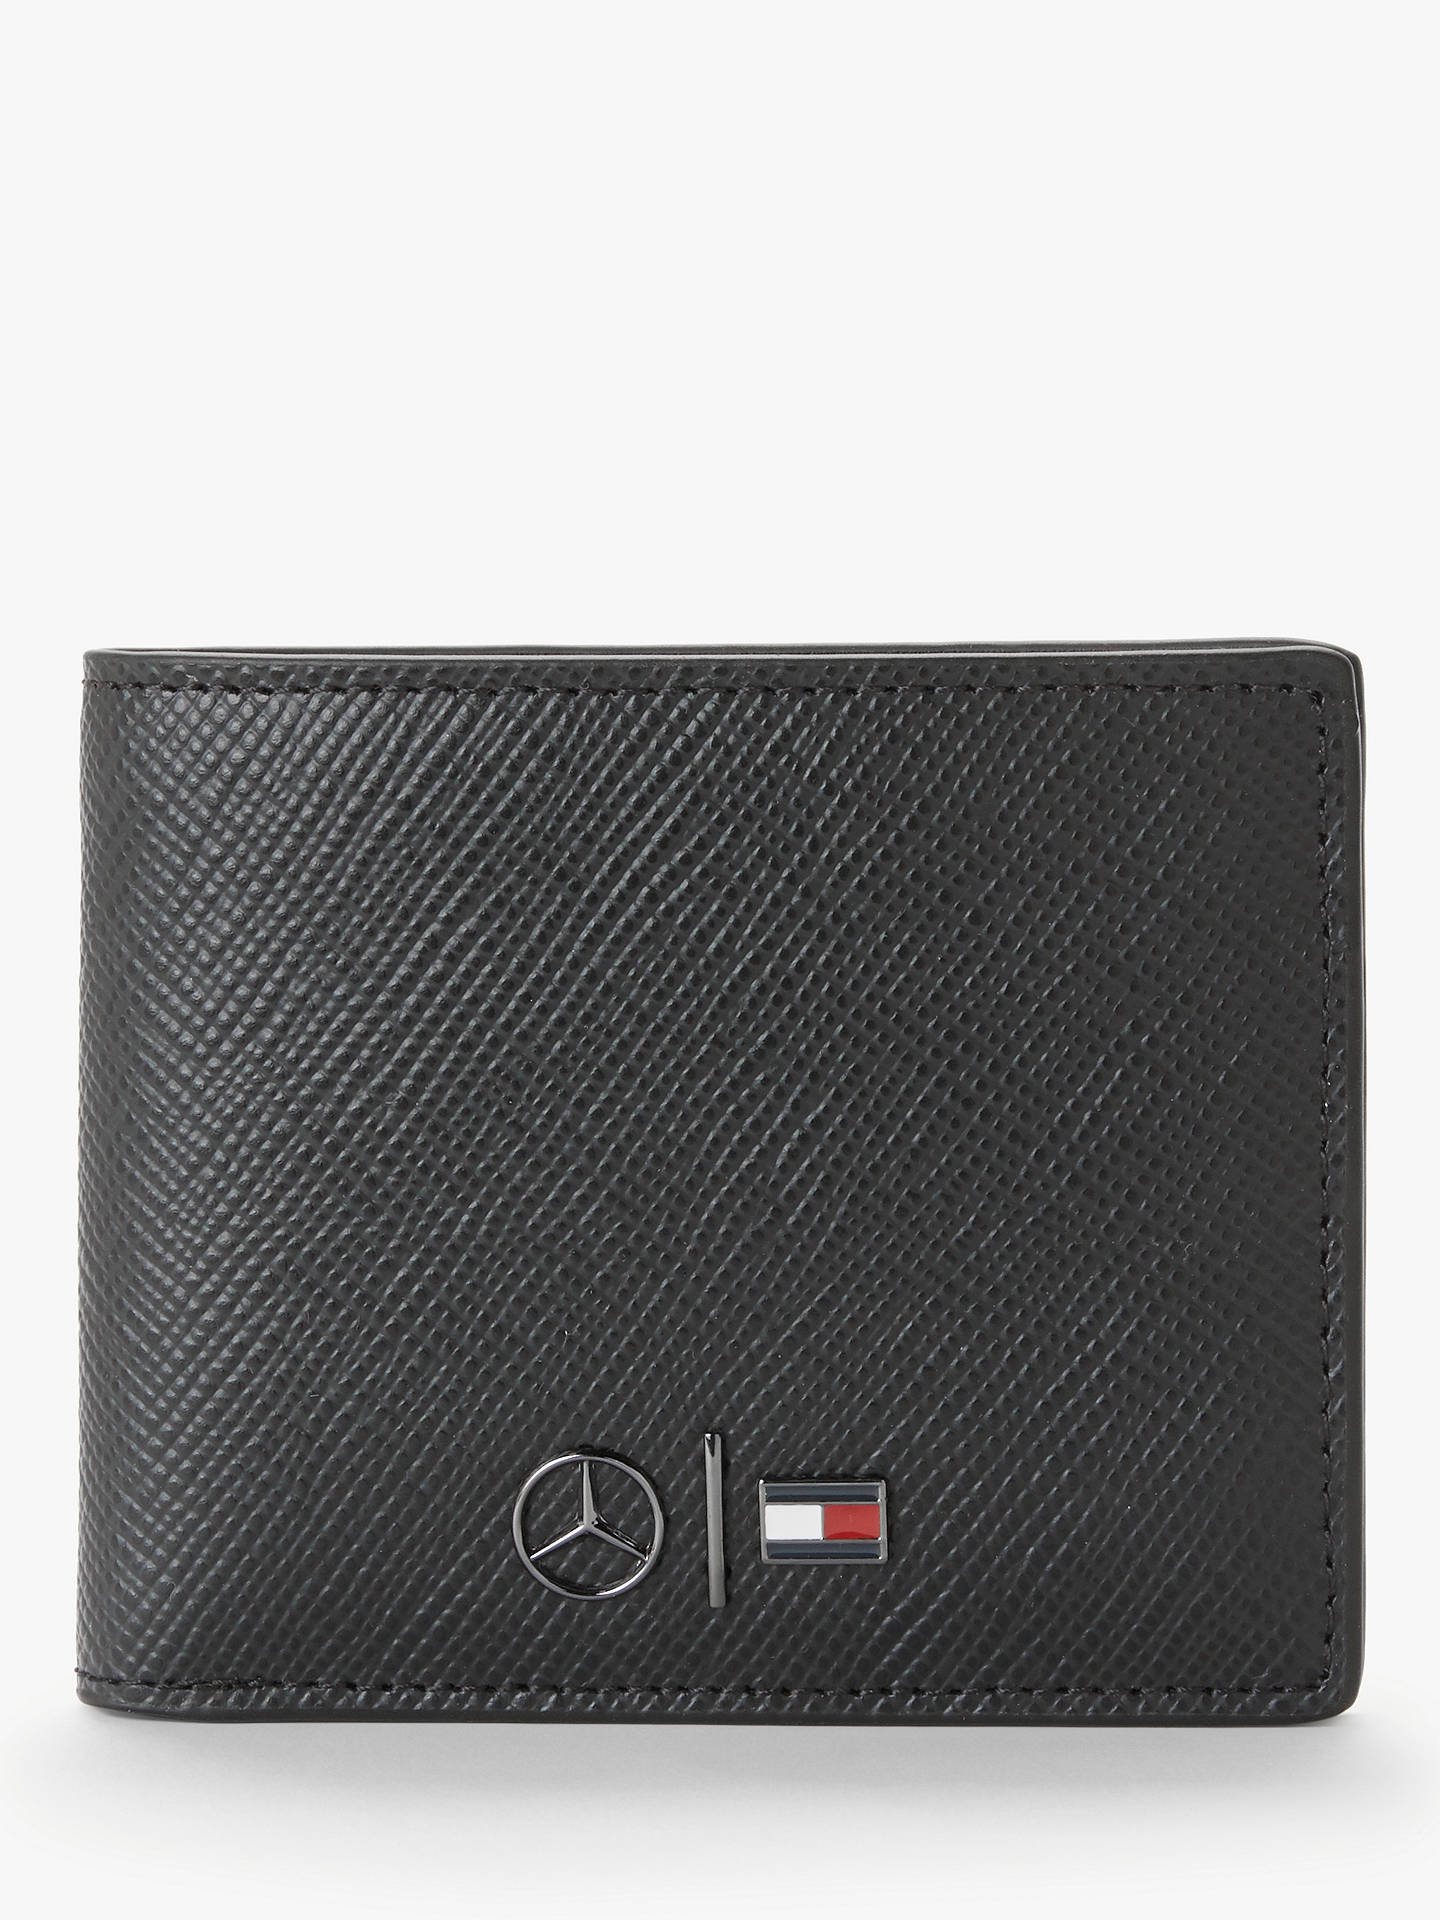 more photos b225f 5f5e2 Tommy Hilfiger Mercedes Benz Small Leather Wallet, Black